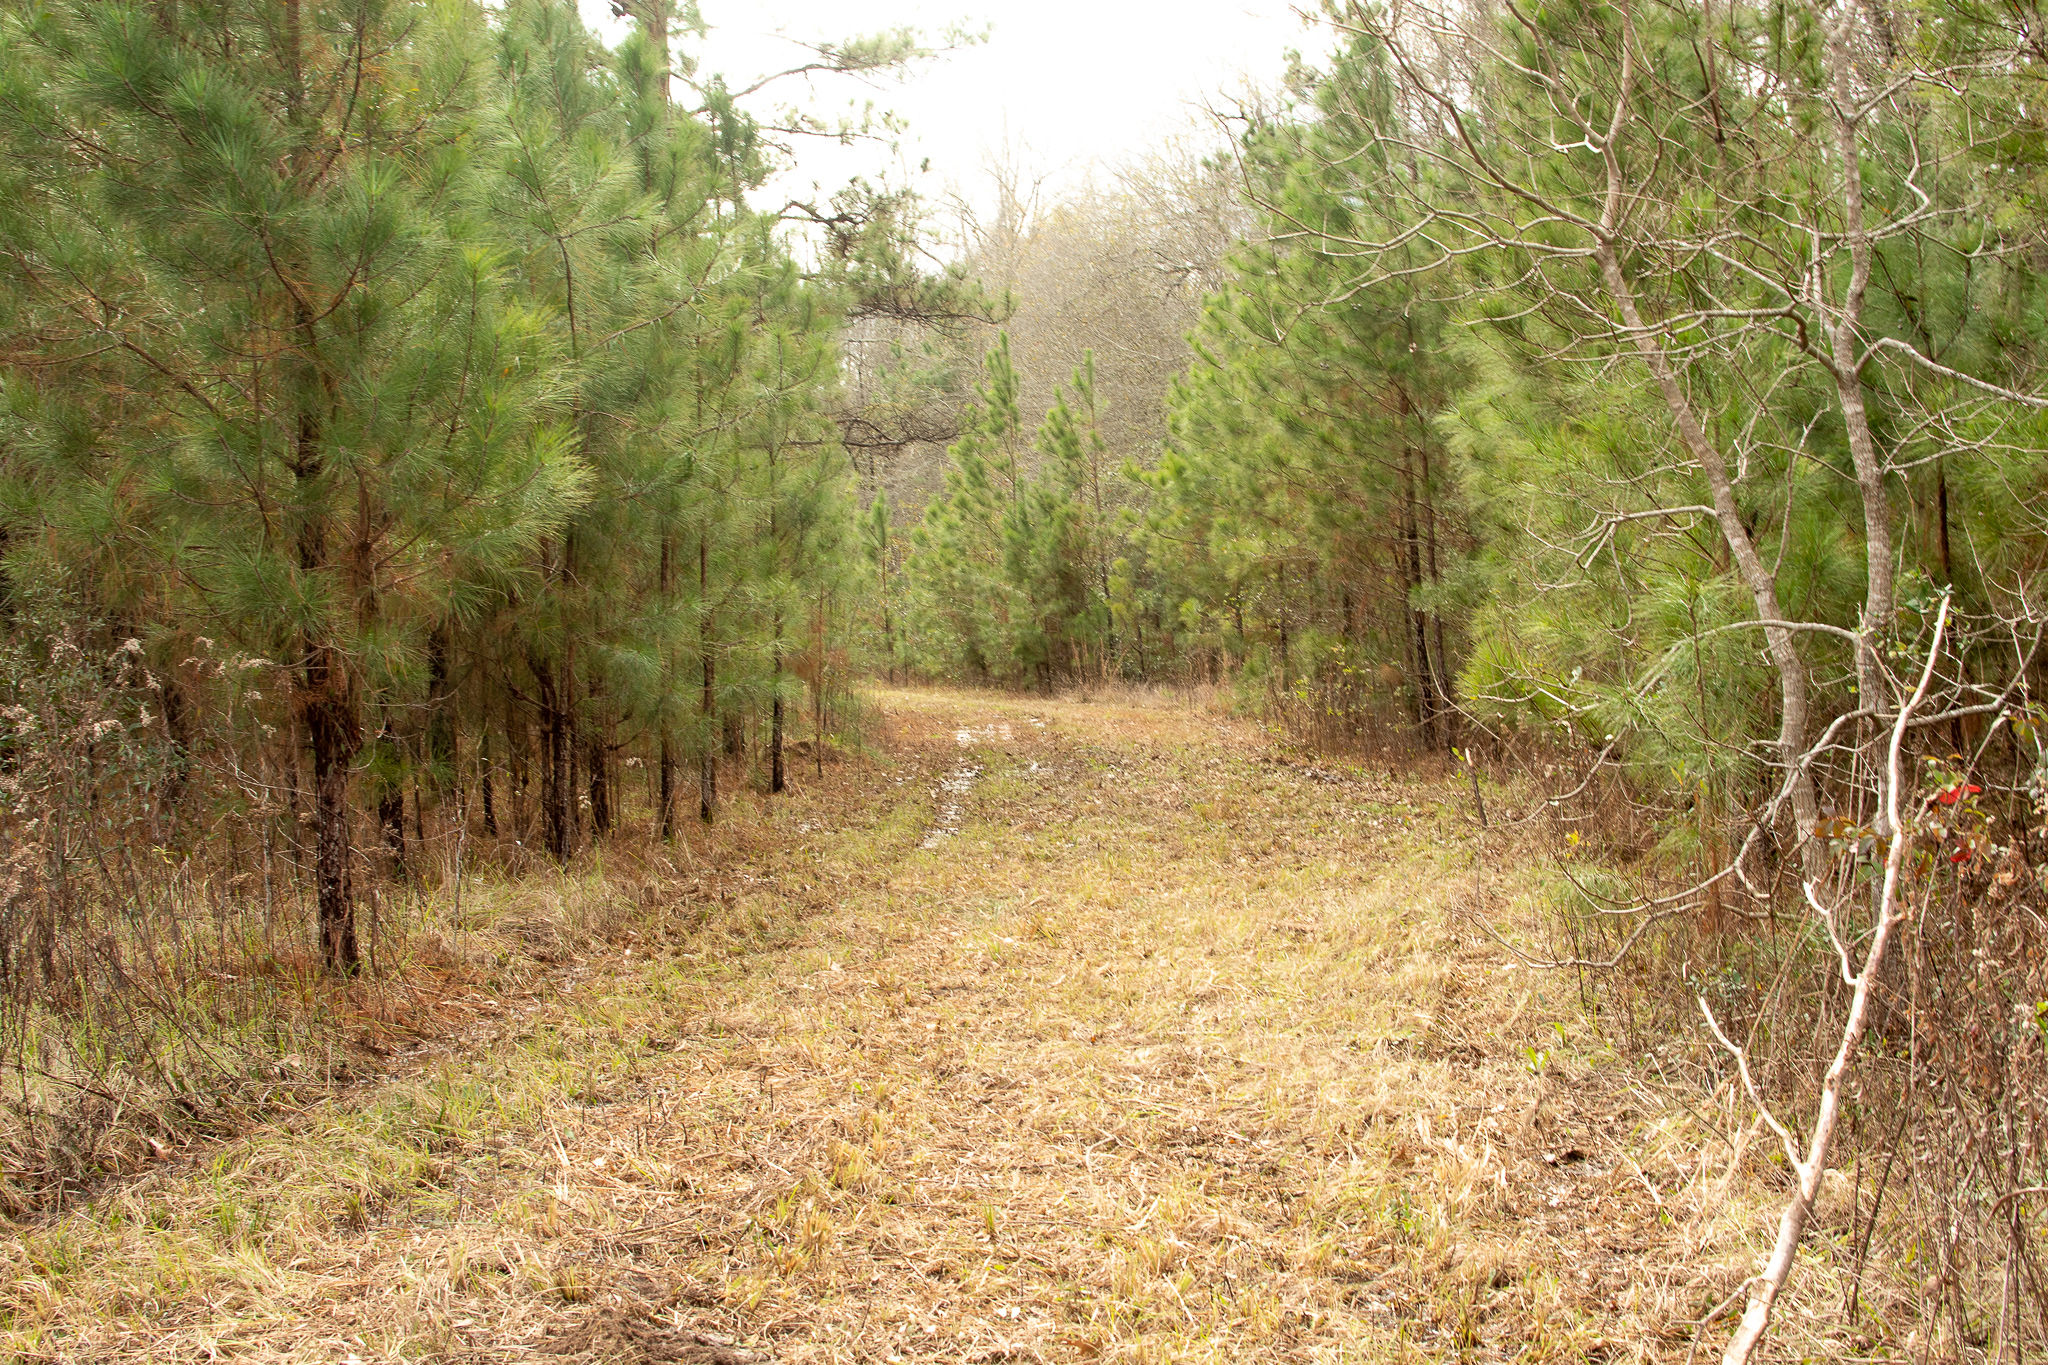 176 Smokey Cove Road Tract, Beauregard Parish, 25 Acres +/-